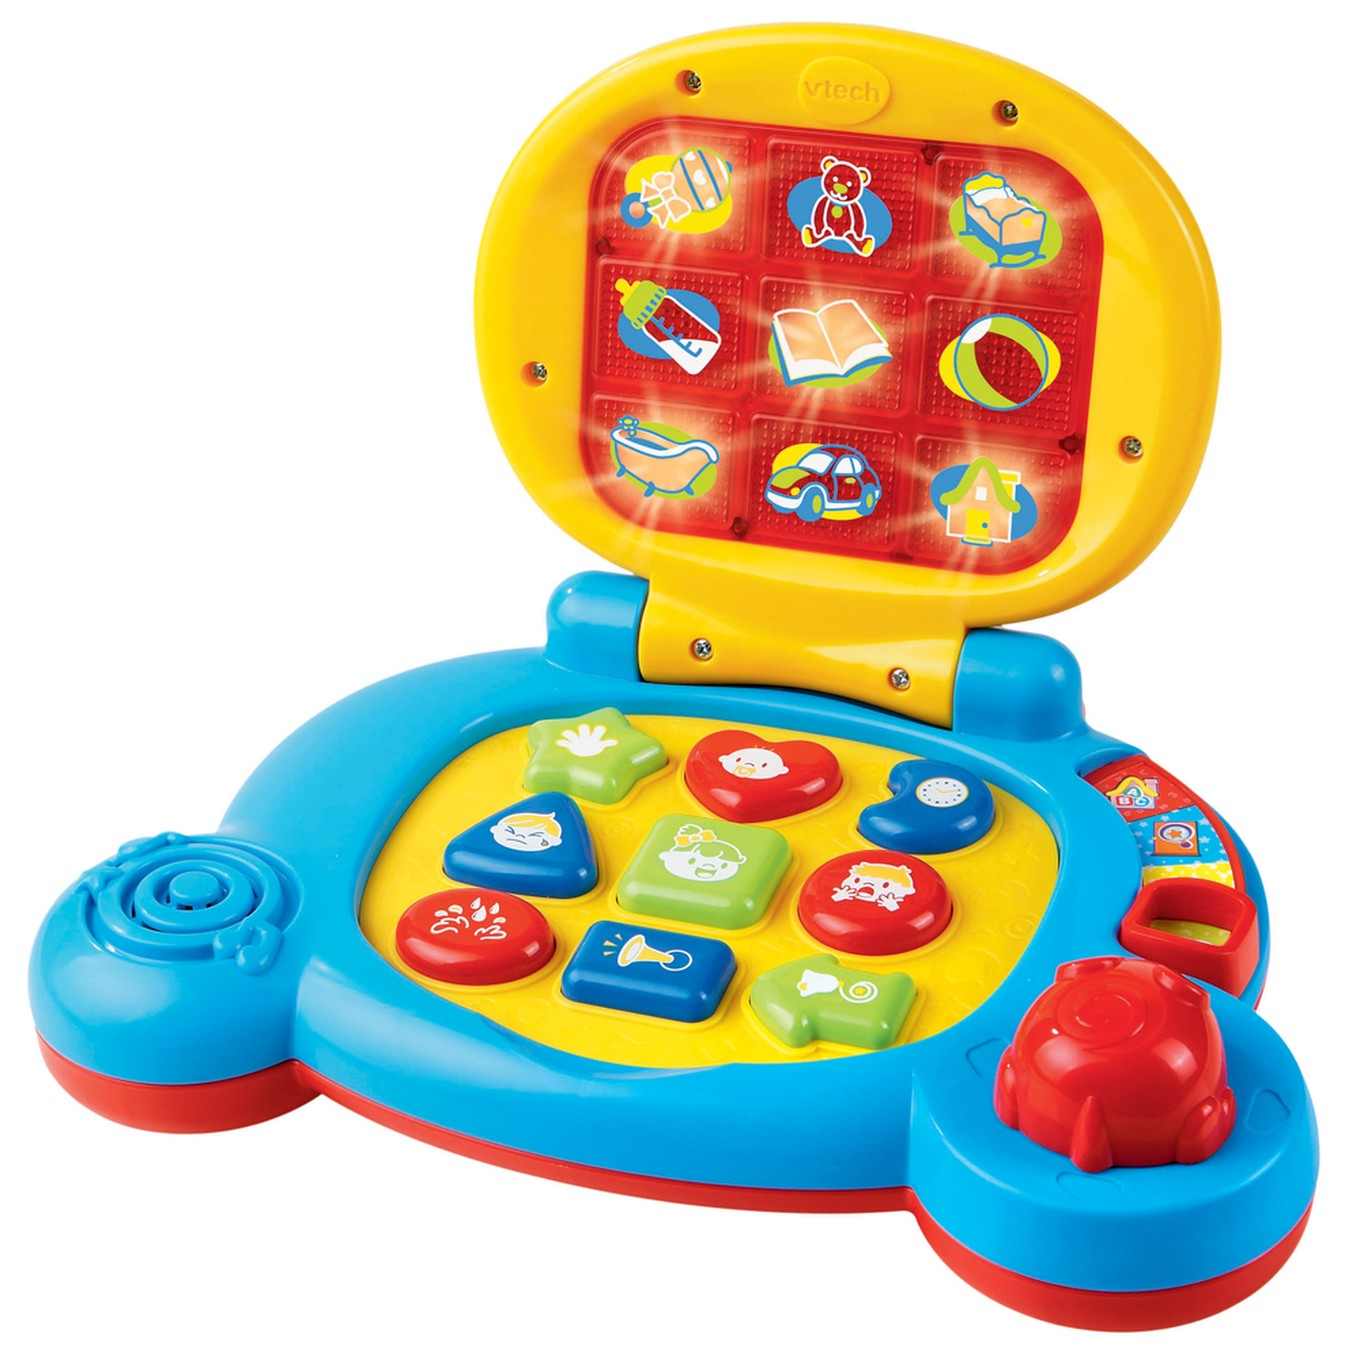 Baby Learning Toys : Baby s learning laptop infant toy vtechkids